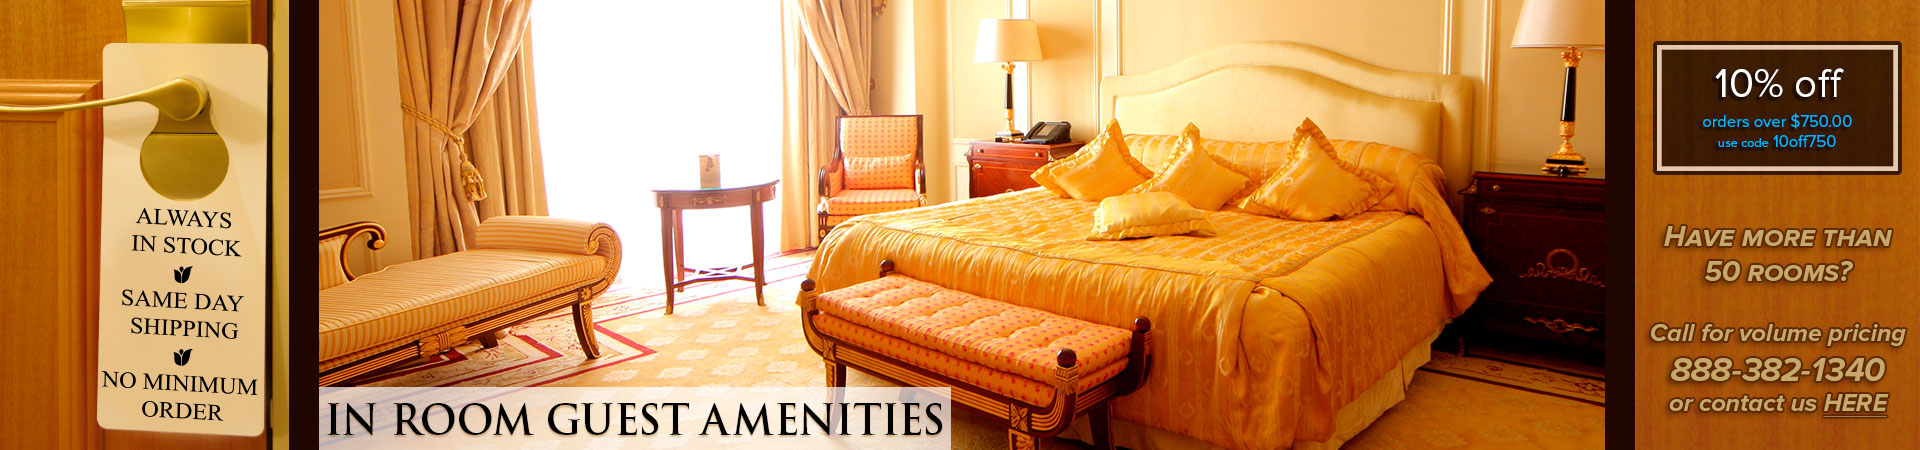 Accent Amenities, Inc.